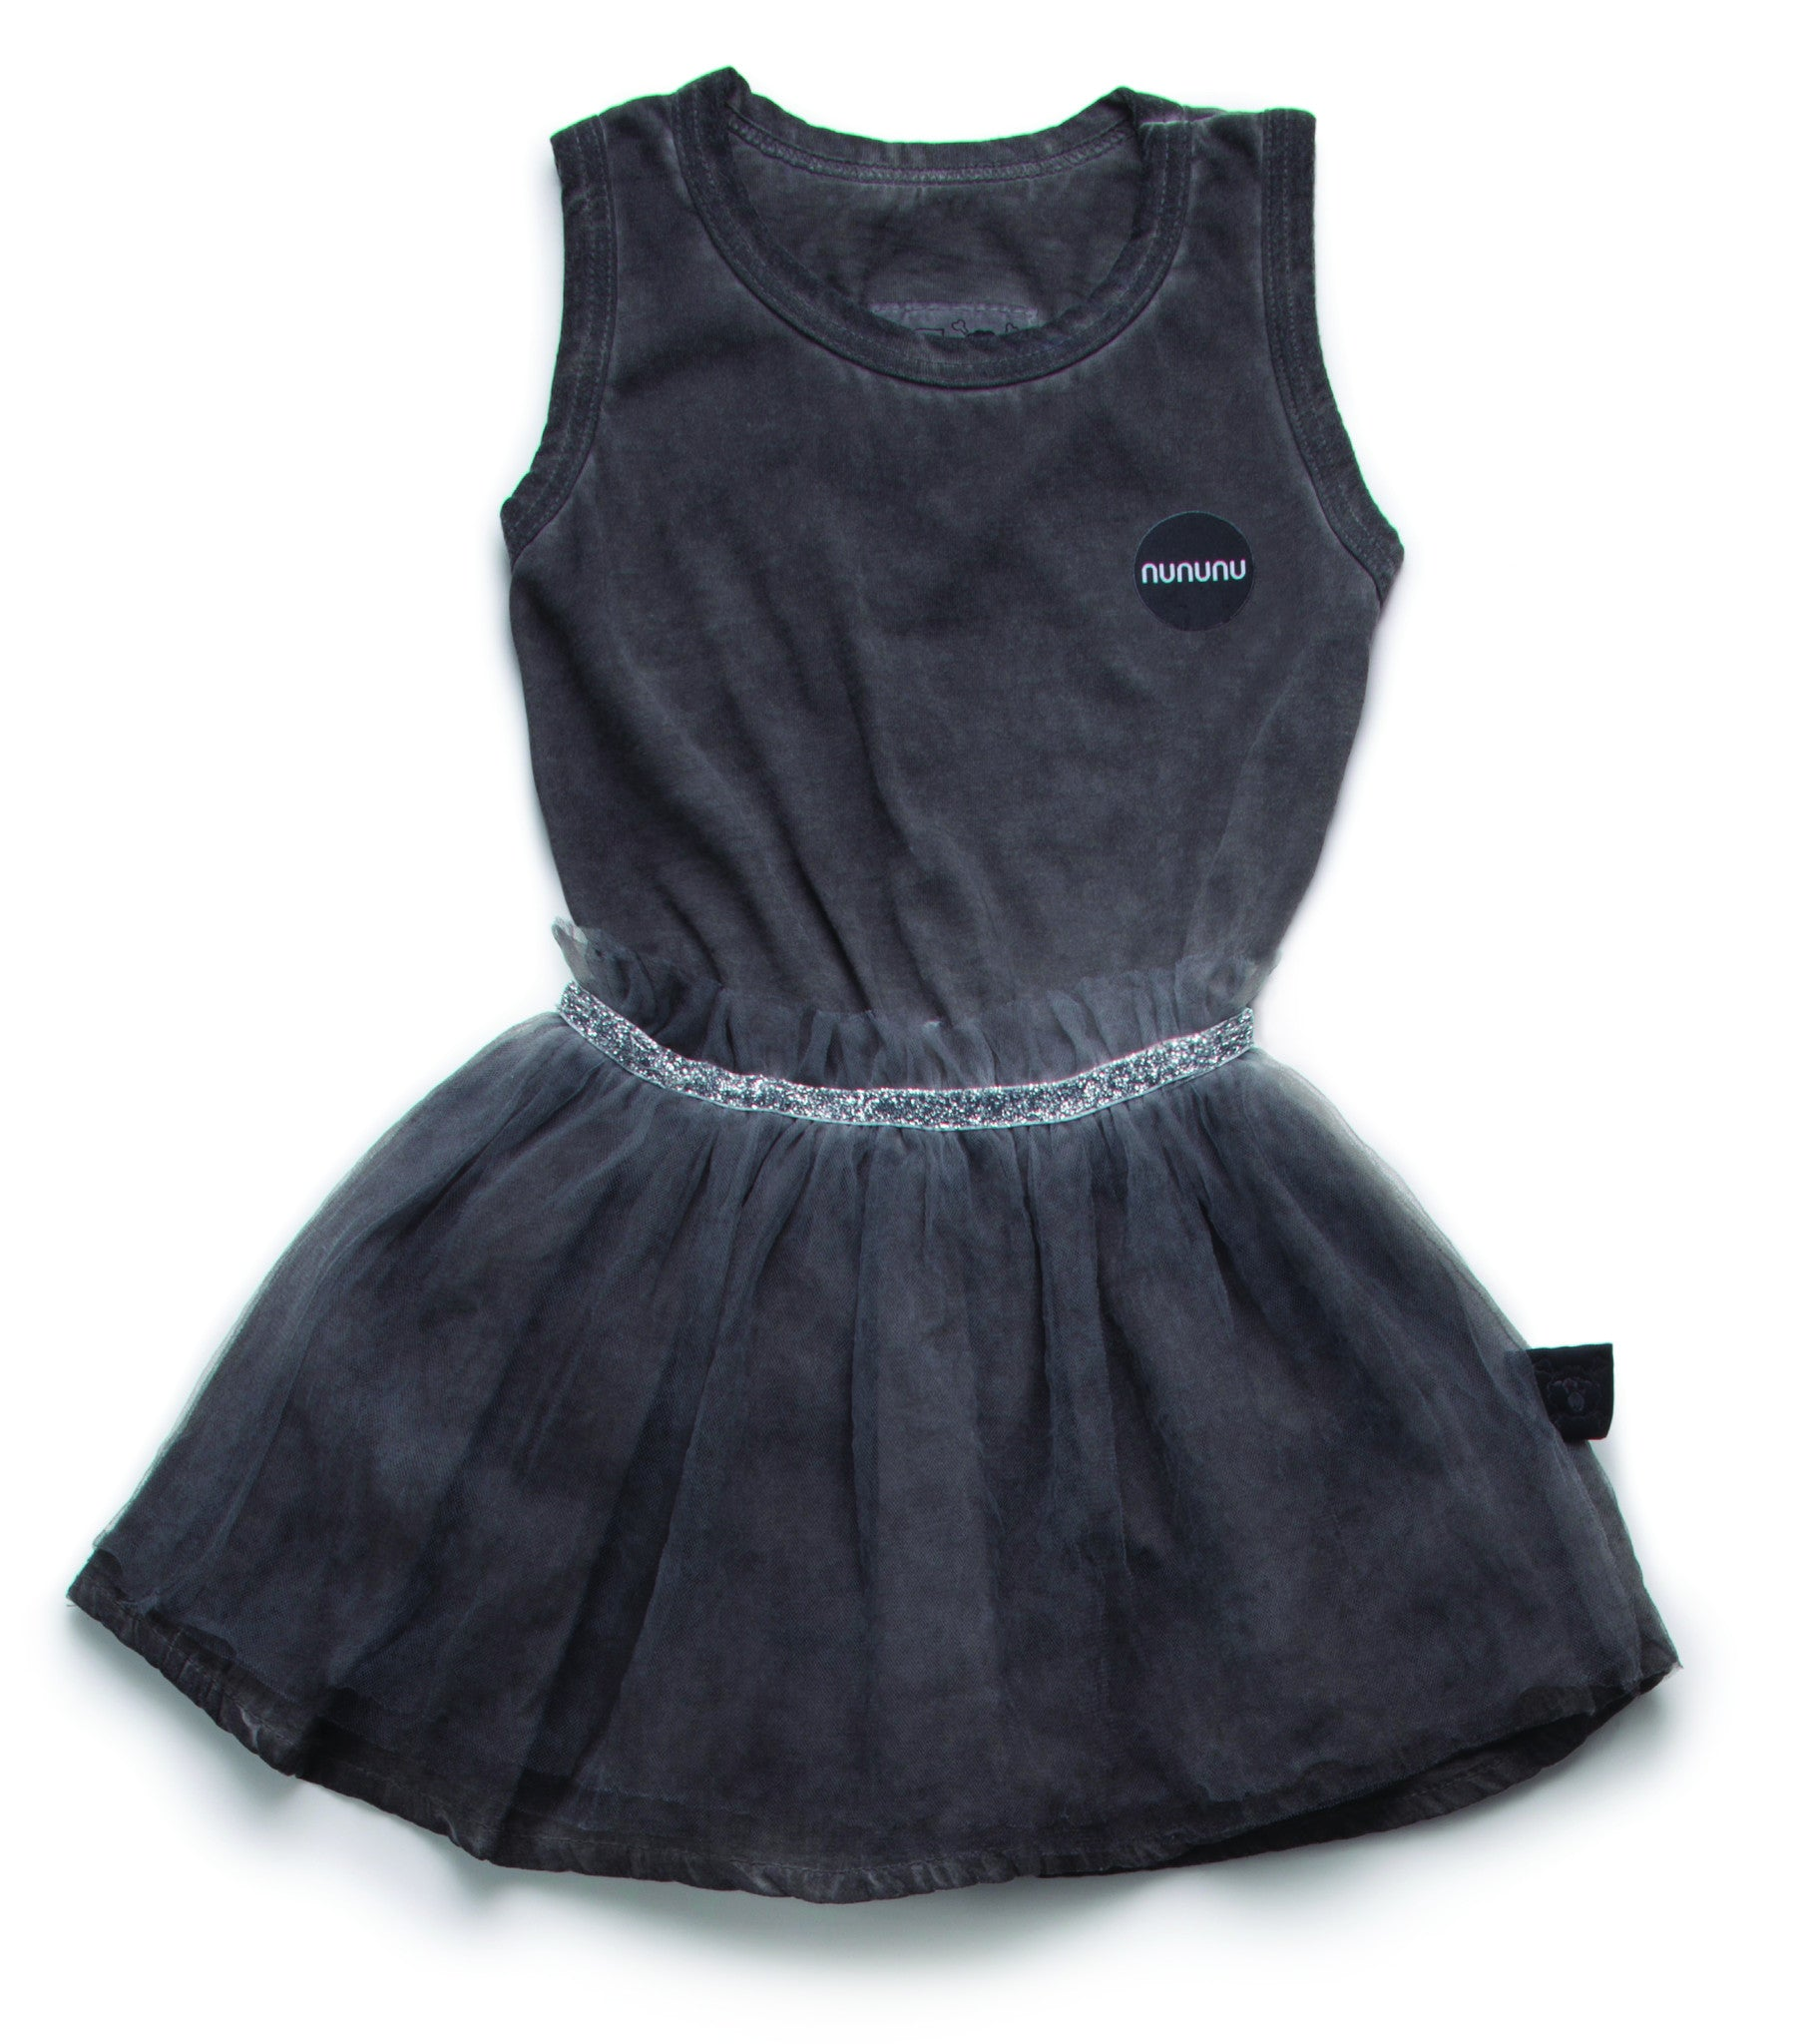 NUNUNU Dyed Grey Tulle Onesie Skirt - Ladida